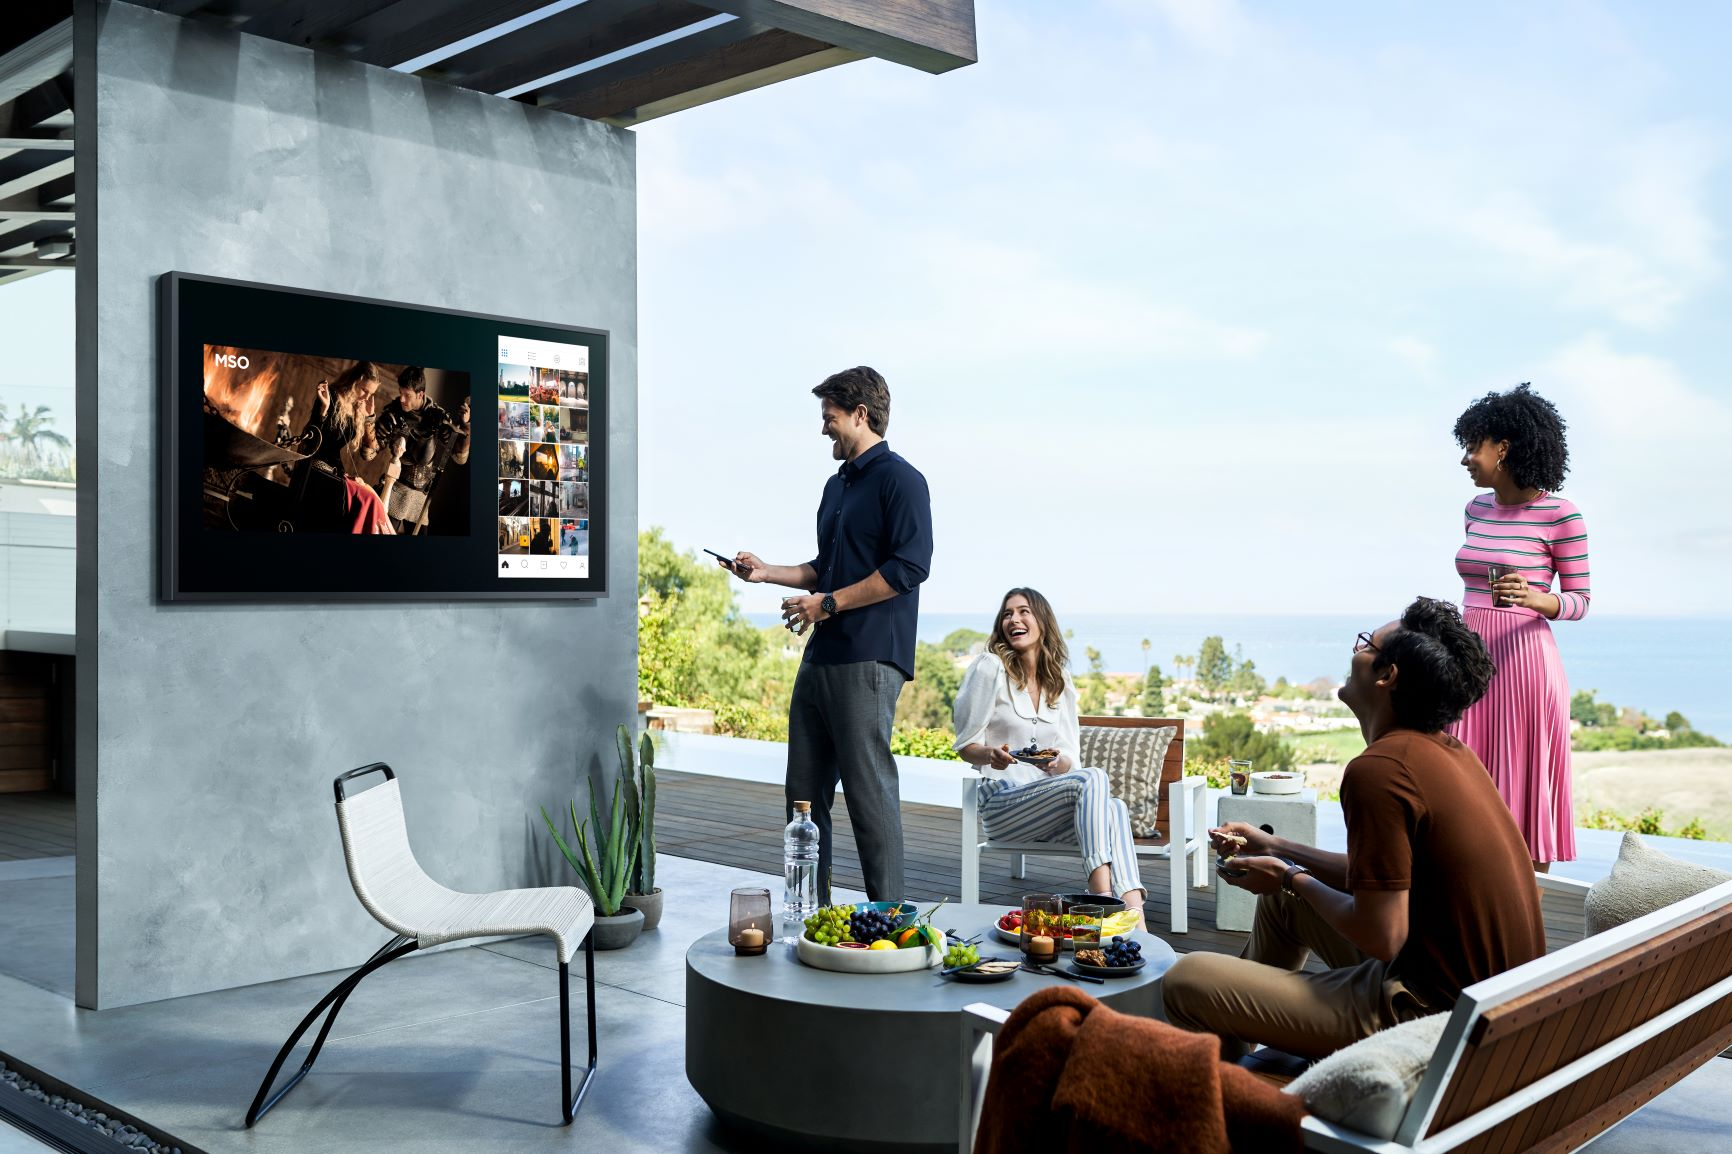 With Samsung's Terrace TVs, you can host a movie party on the patio